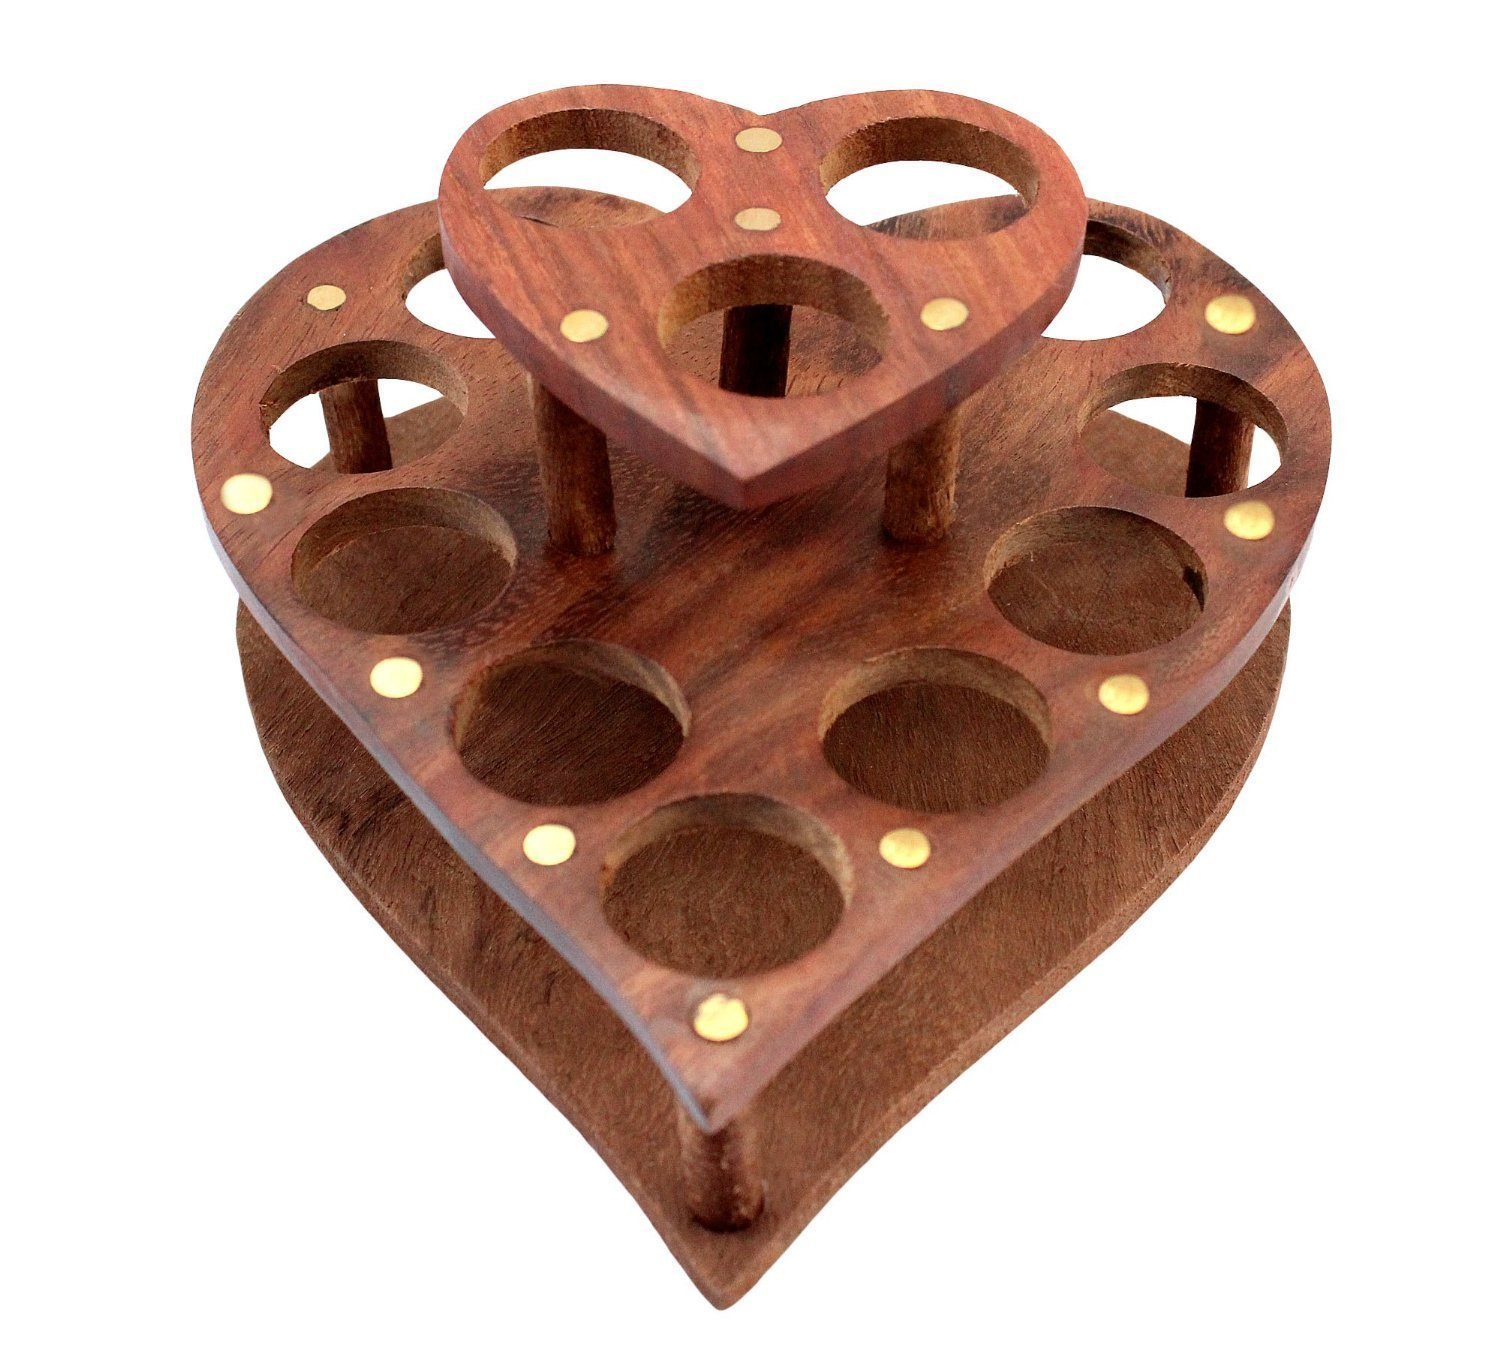 IndiaBigShop Wooden Lipstick Makeup Organizer Cosmetic Storage with Heart Shape 10 Spaces for Store Lipstick, Bottles, Brushes and More 6 Inch